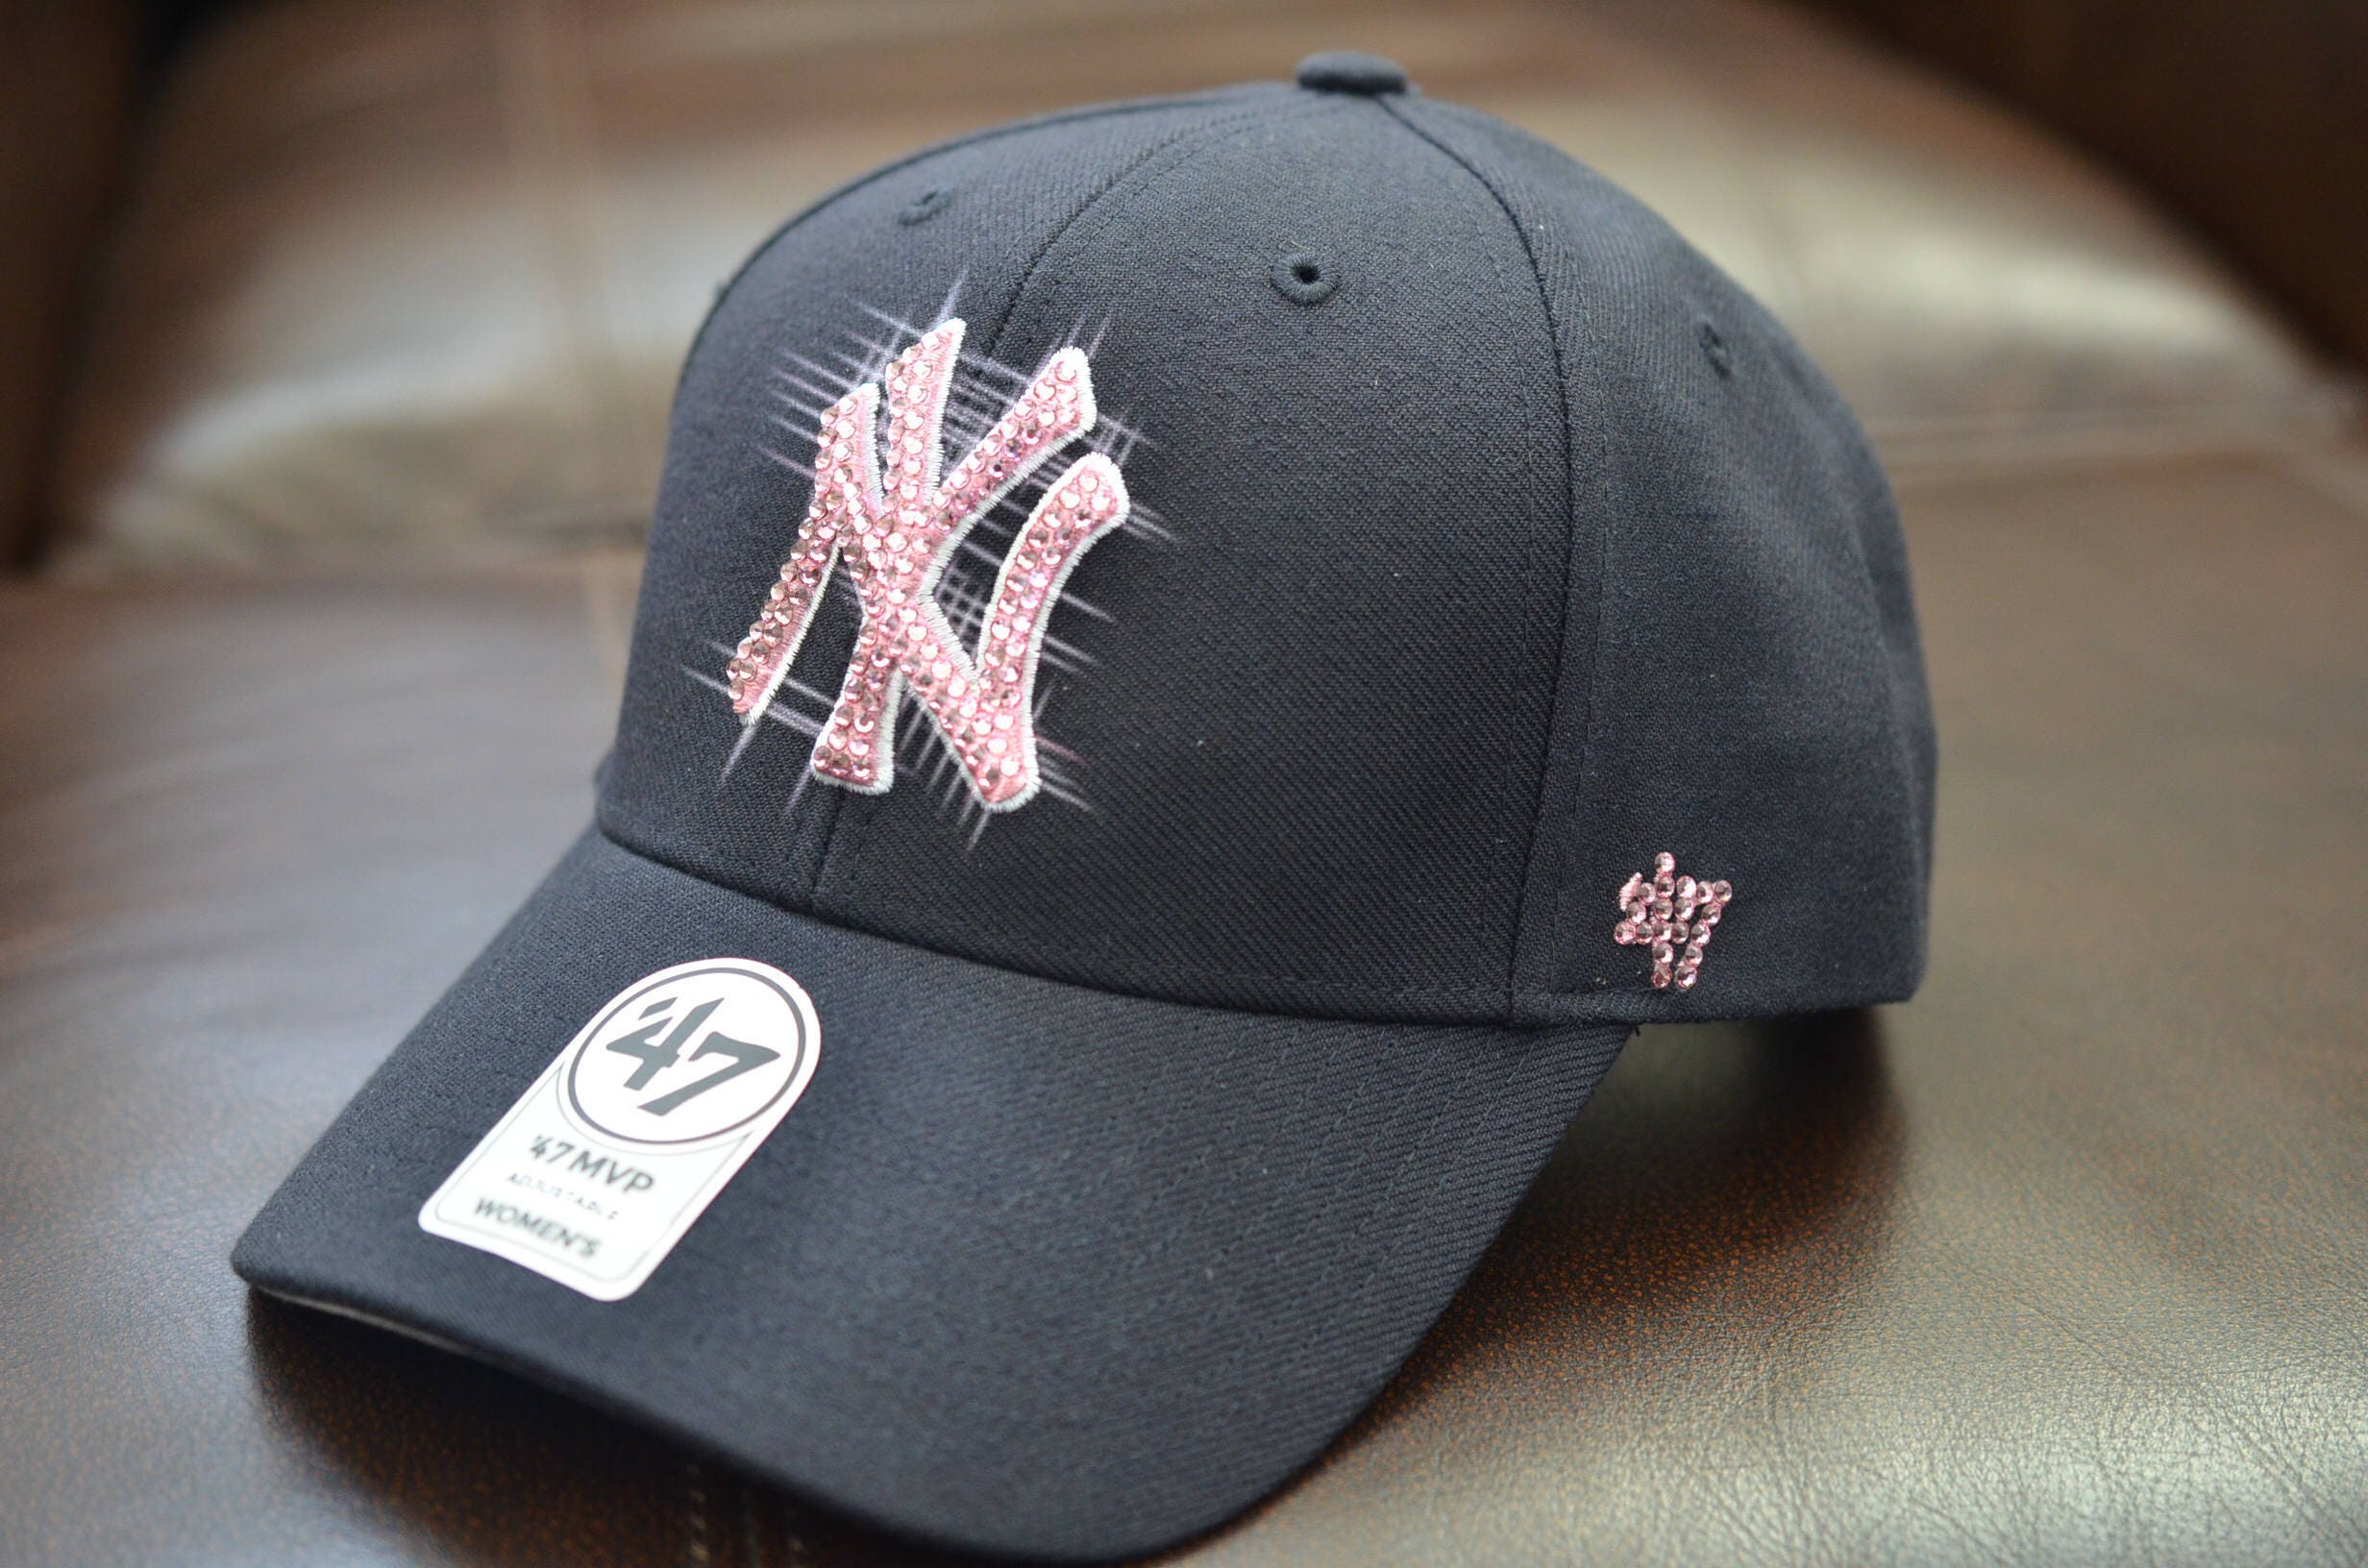 c06bccbc224 Bling Bling Customized New York Yankees Cap With Swarovski Crystals ...